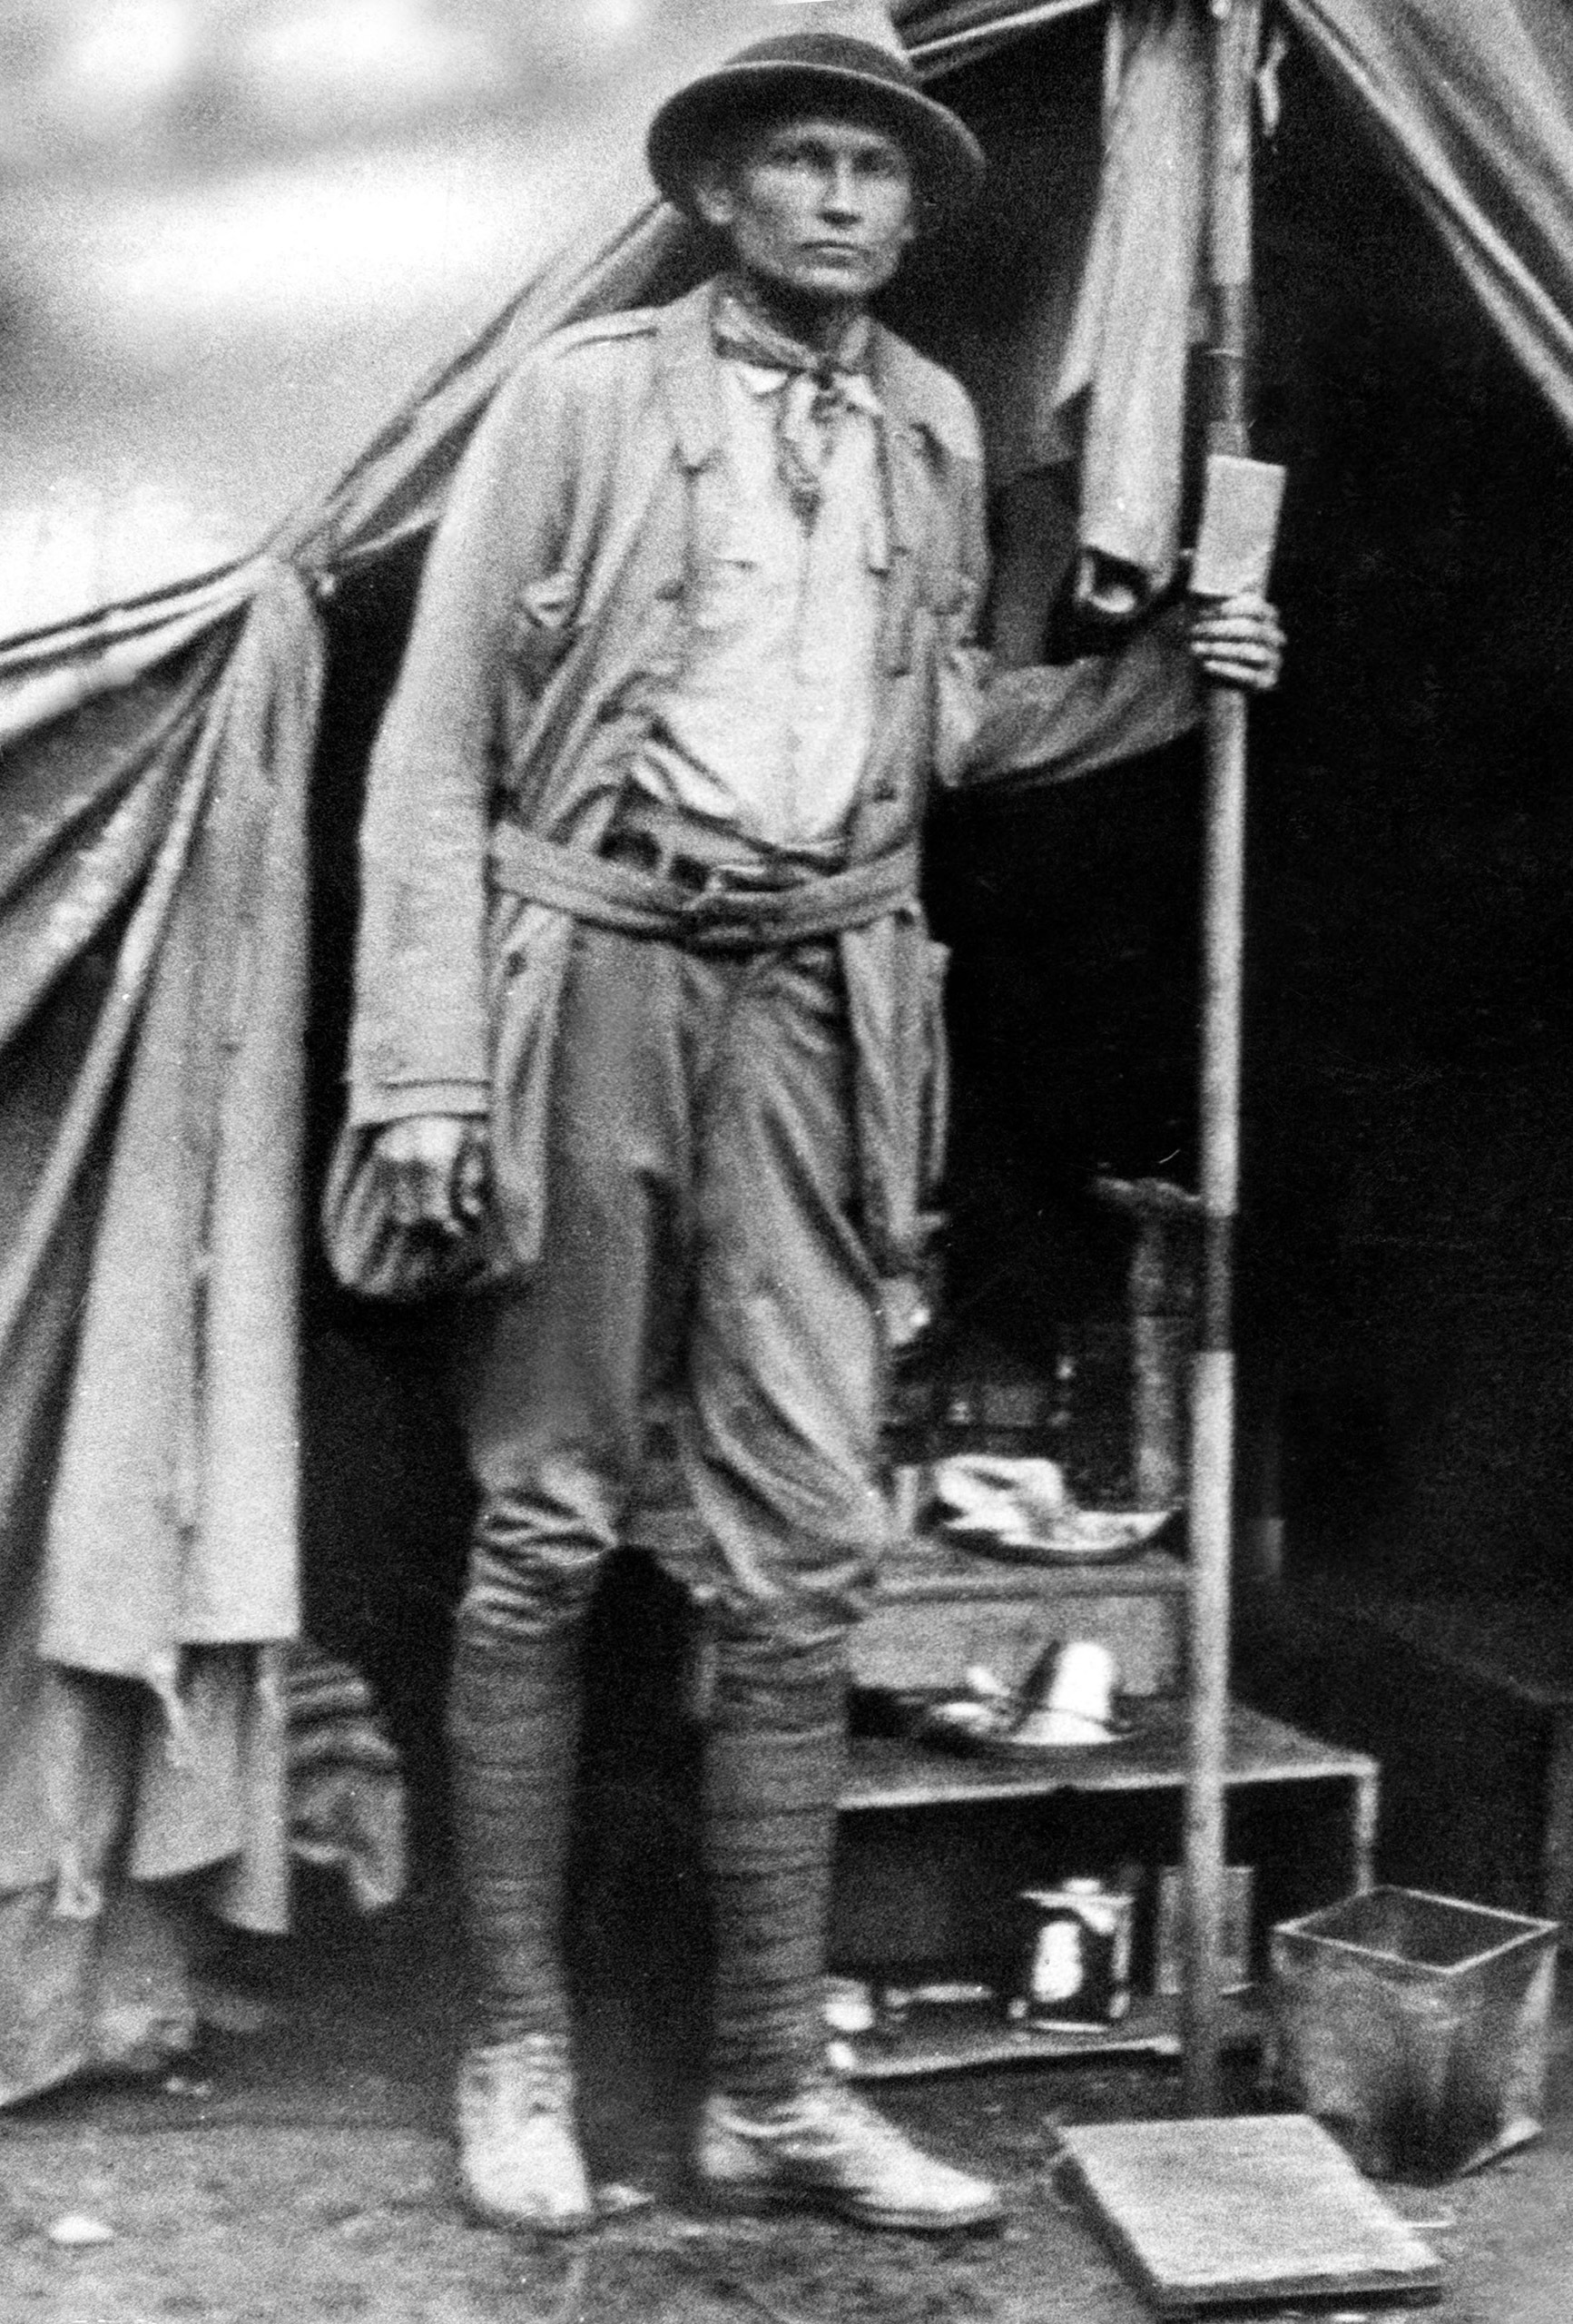 Yale graduate and American explorer Hiram Bingham (1875-1956) who discovered the Machu Picchu in Peru, July 24, 1911.